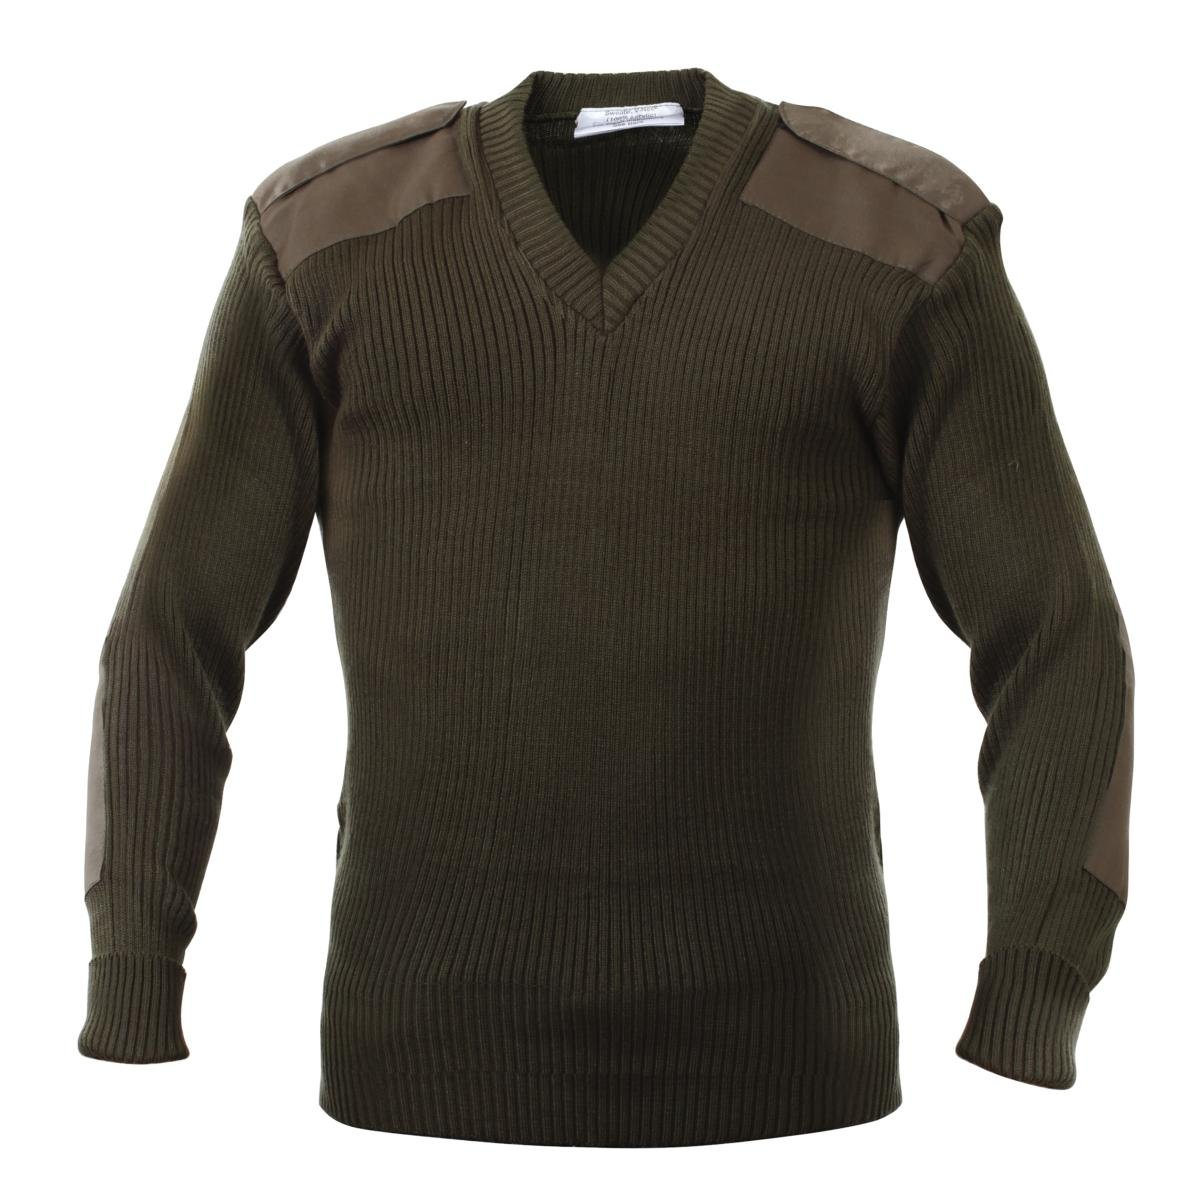 Rothco Acrylic V-Neck Sweater in Olive Drab - Large